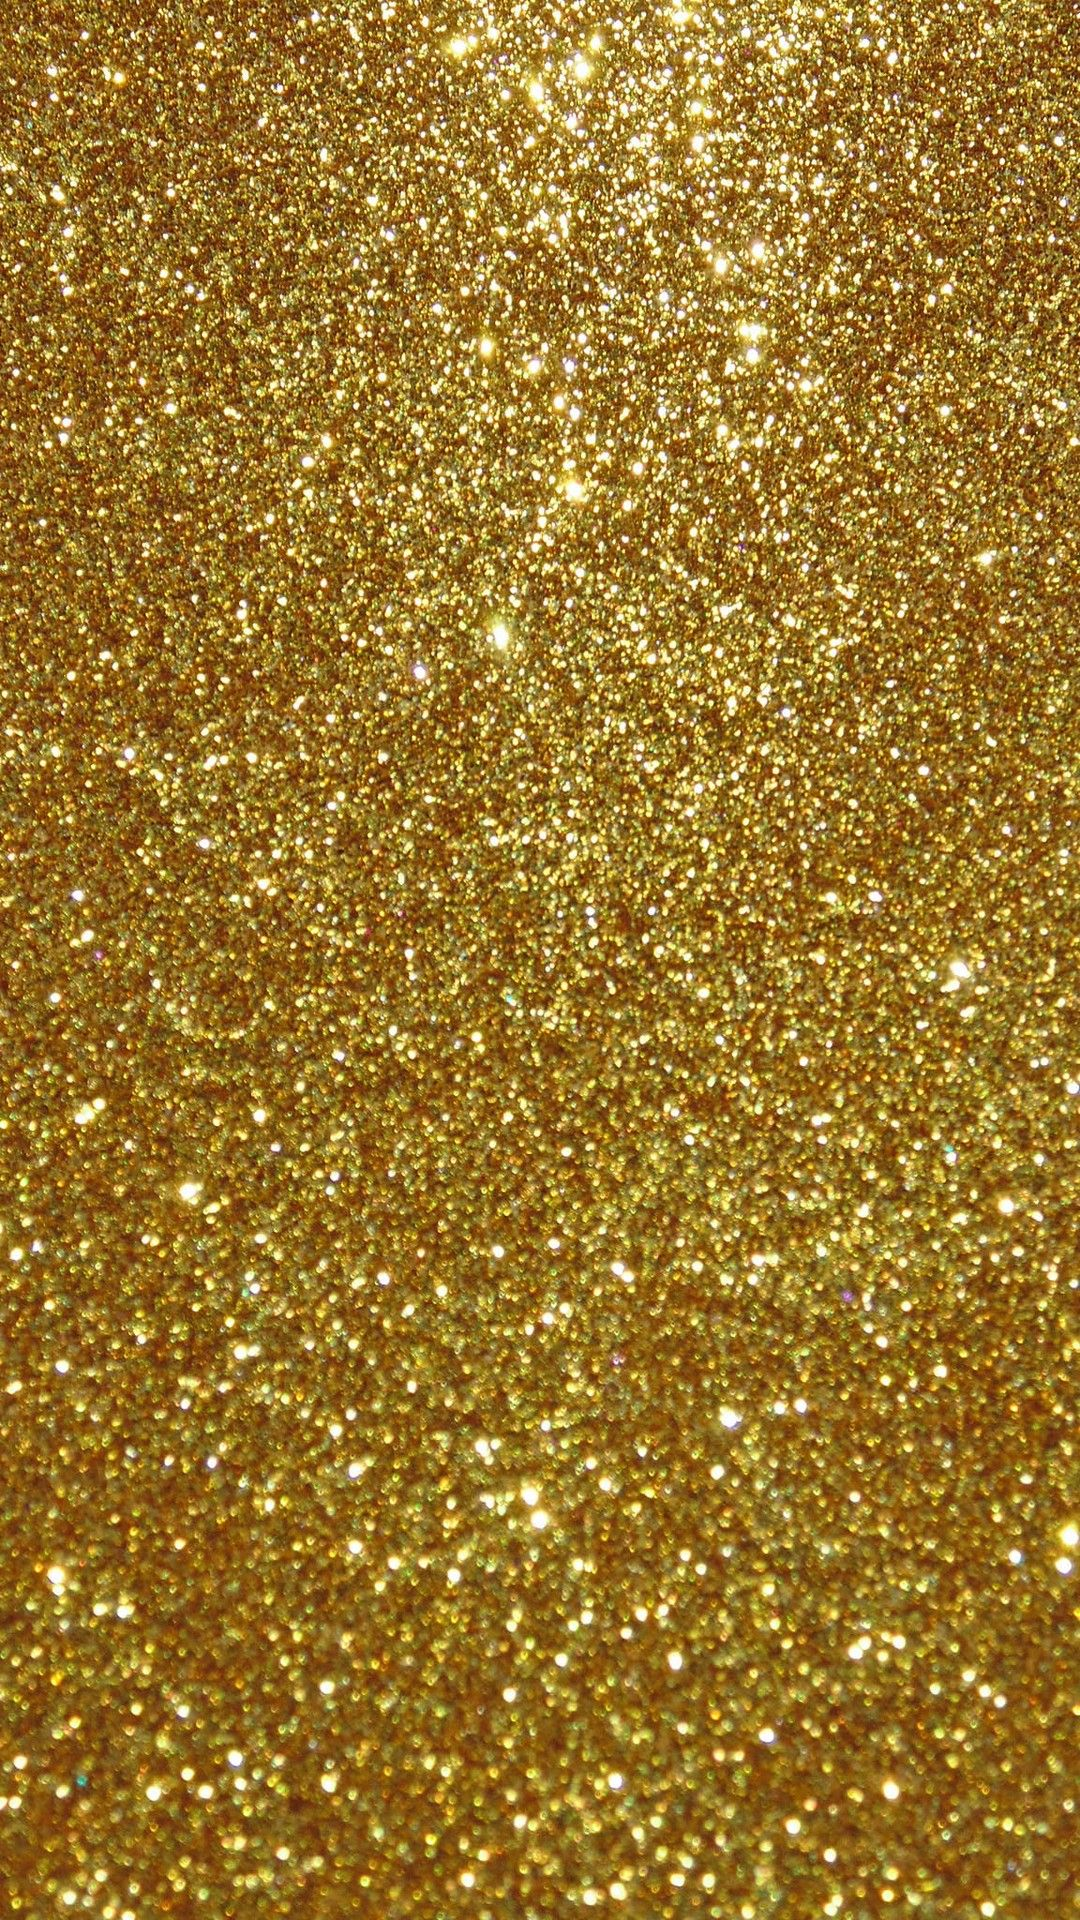 Gold Image Hupages Download Iphone Wallpapers Glitter Phone